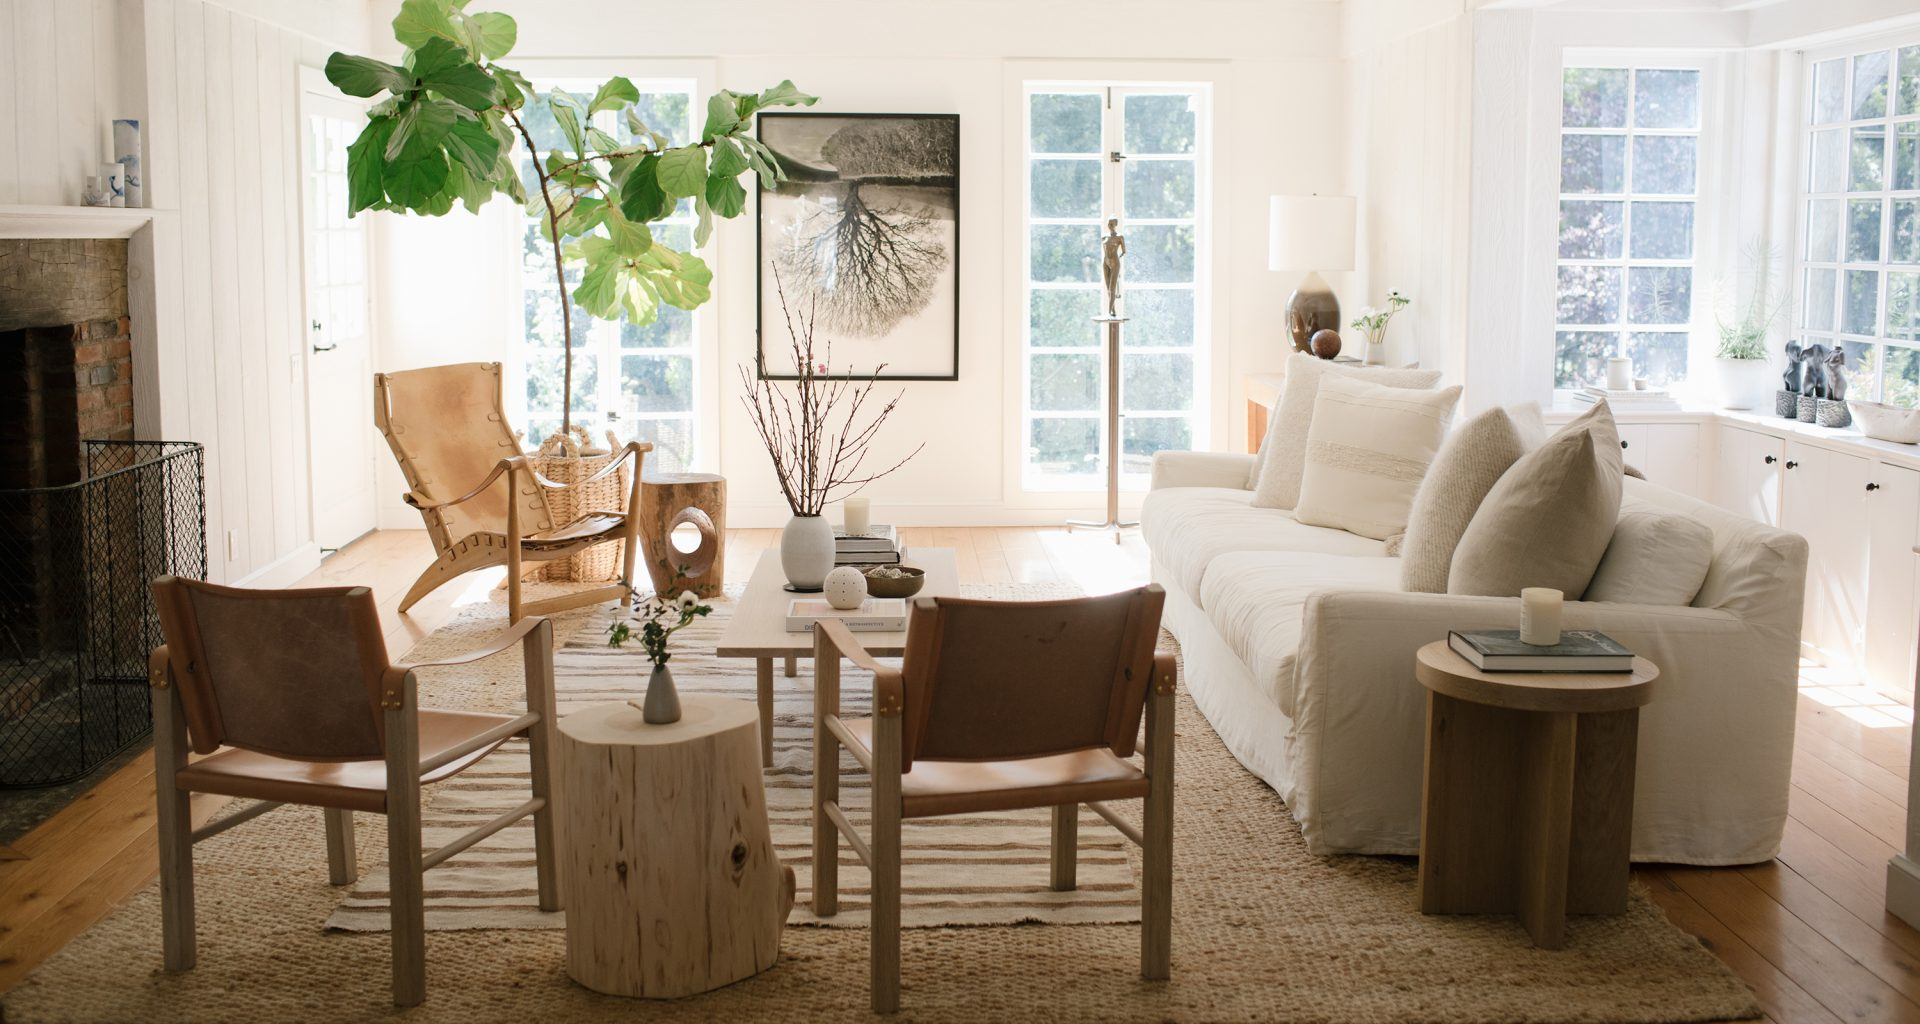 3 Styling Tips to Make Your Living Room Feel Like Home